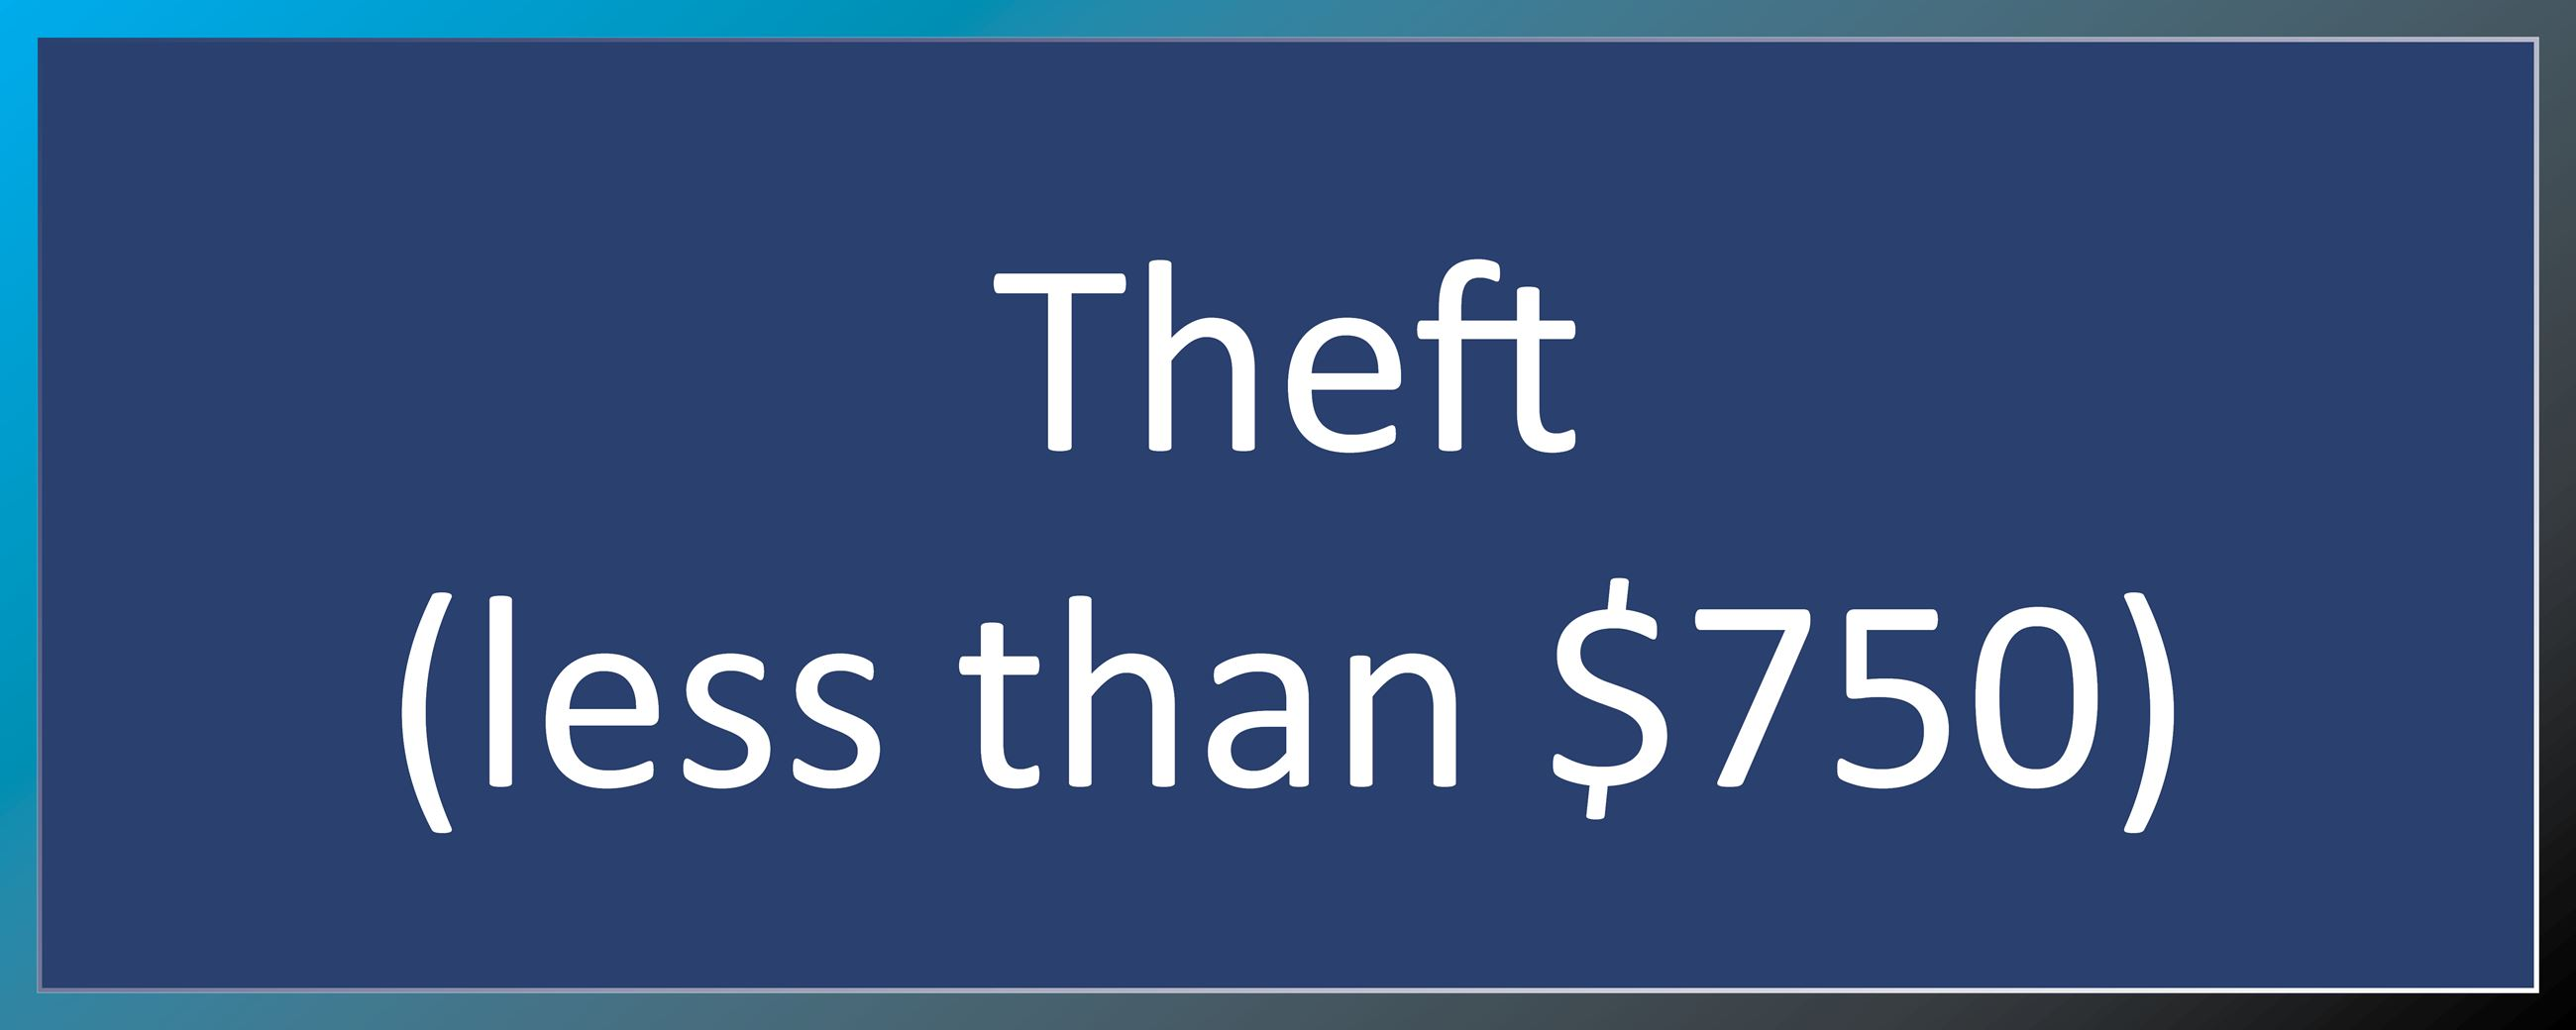 Theft Less Than 750